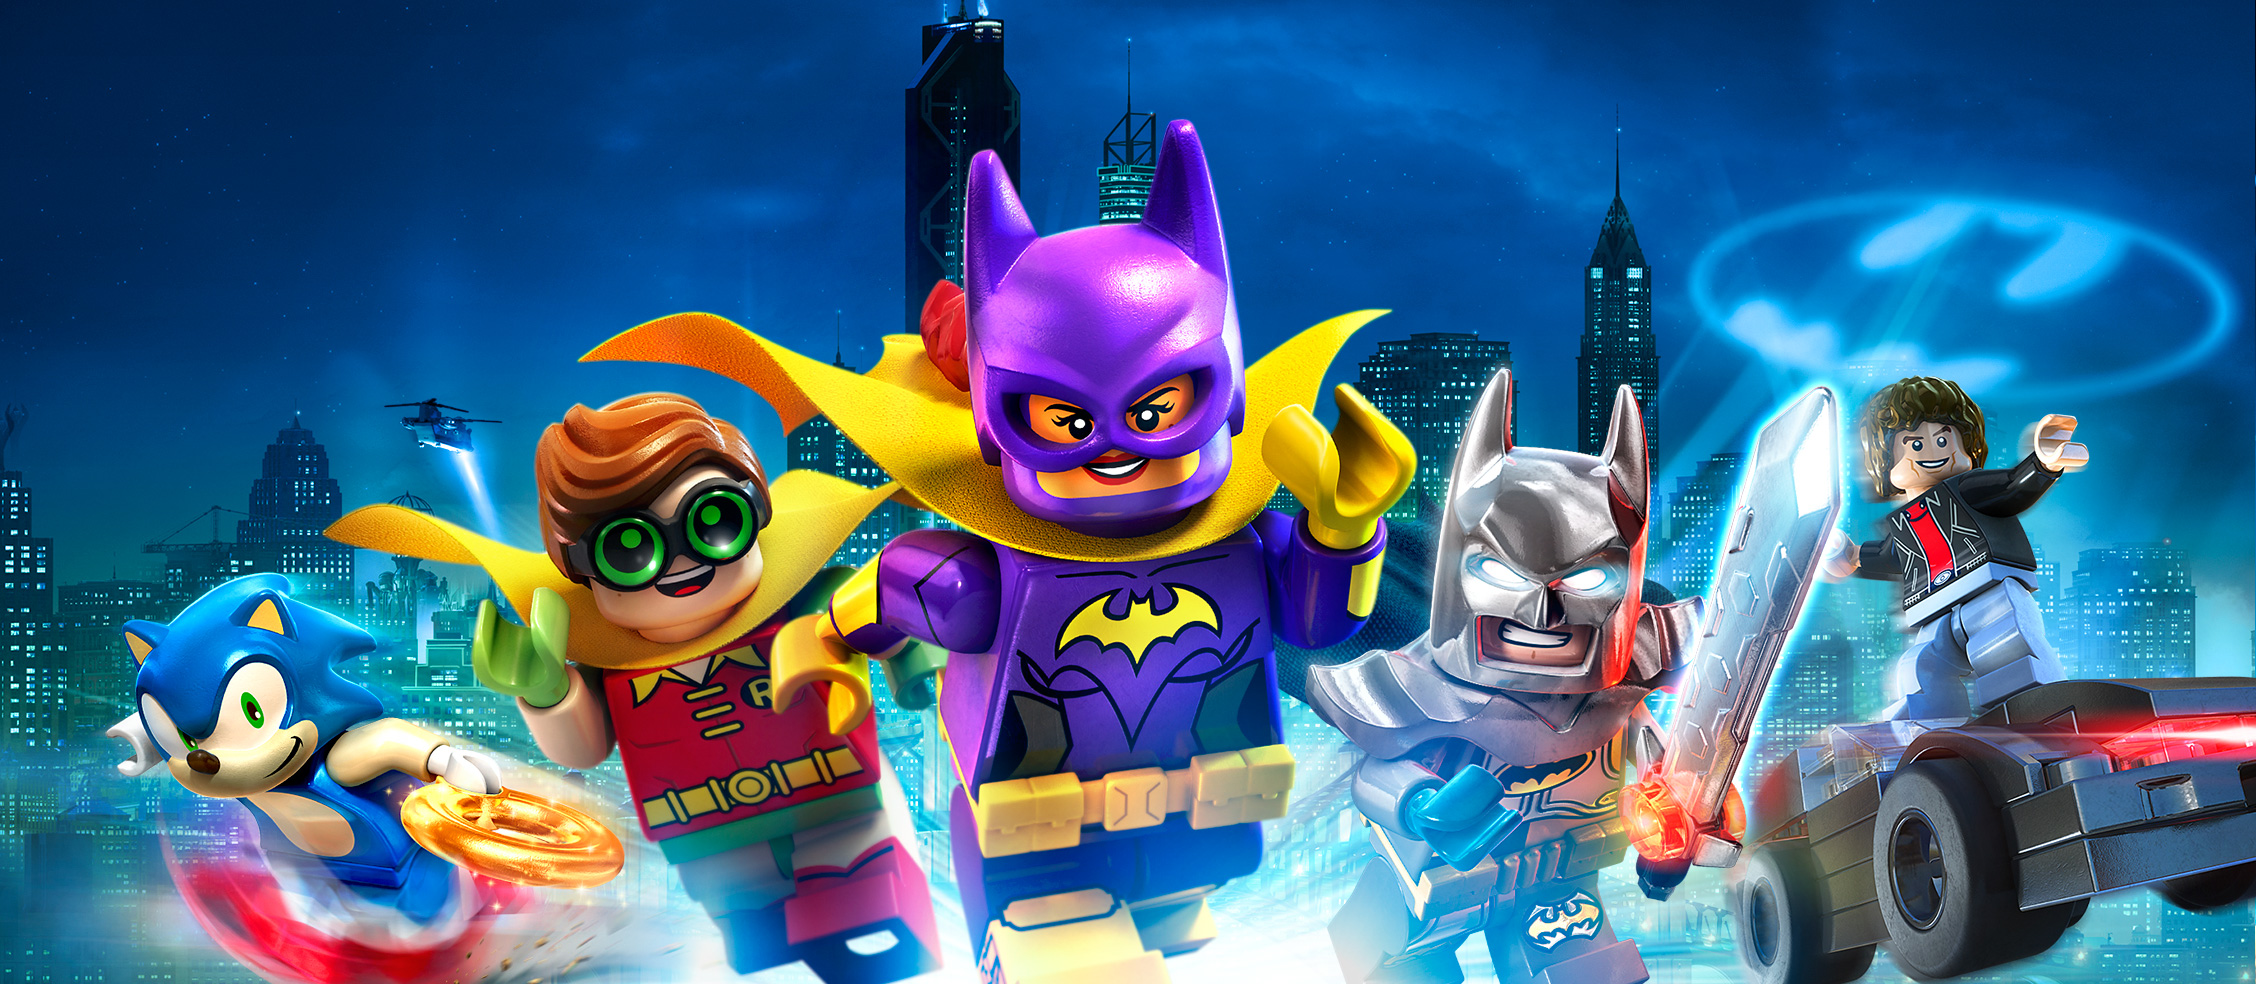 Nice wallpapers LEGO Dimensions 2256x984px